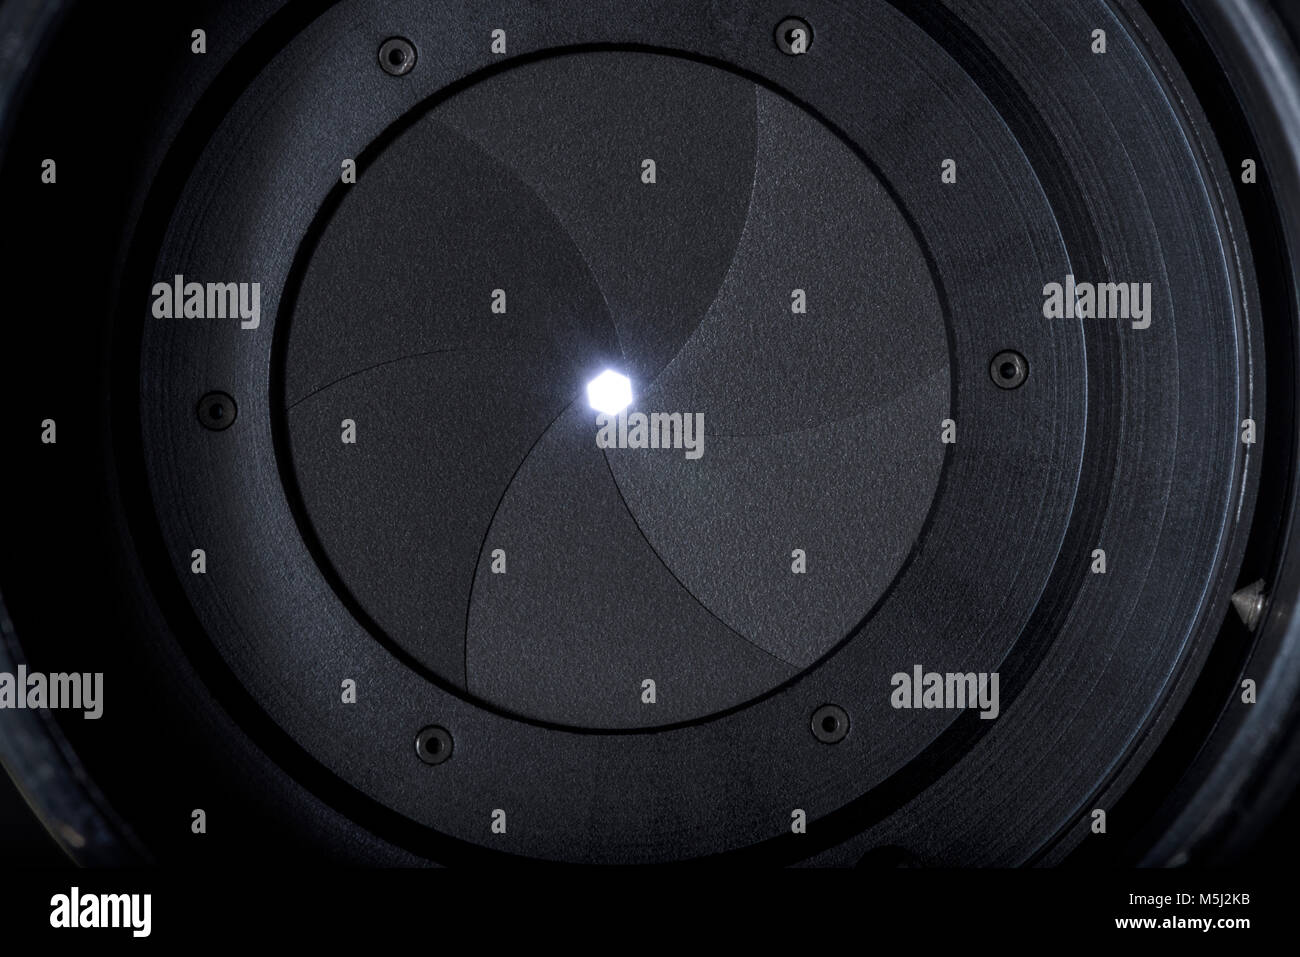 Analog photographic camera parts, diaphragm blades,  mechanism and controls details high definition closeup - Stock Image